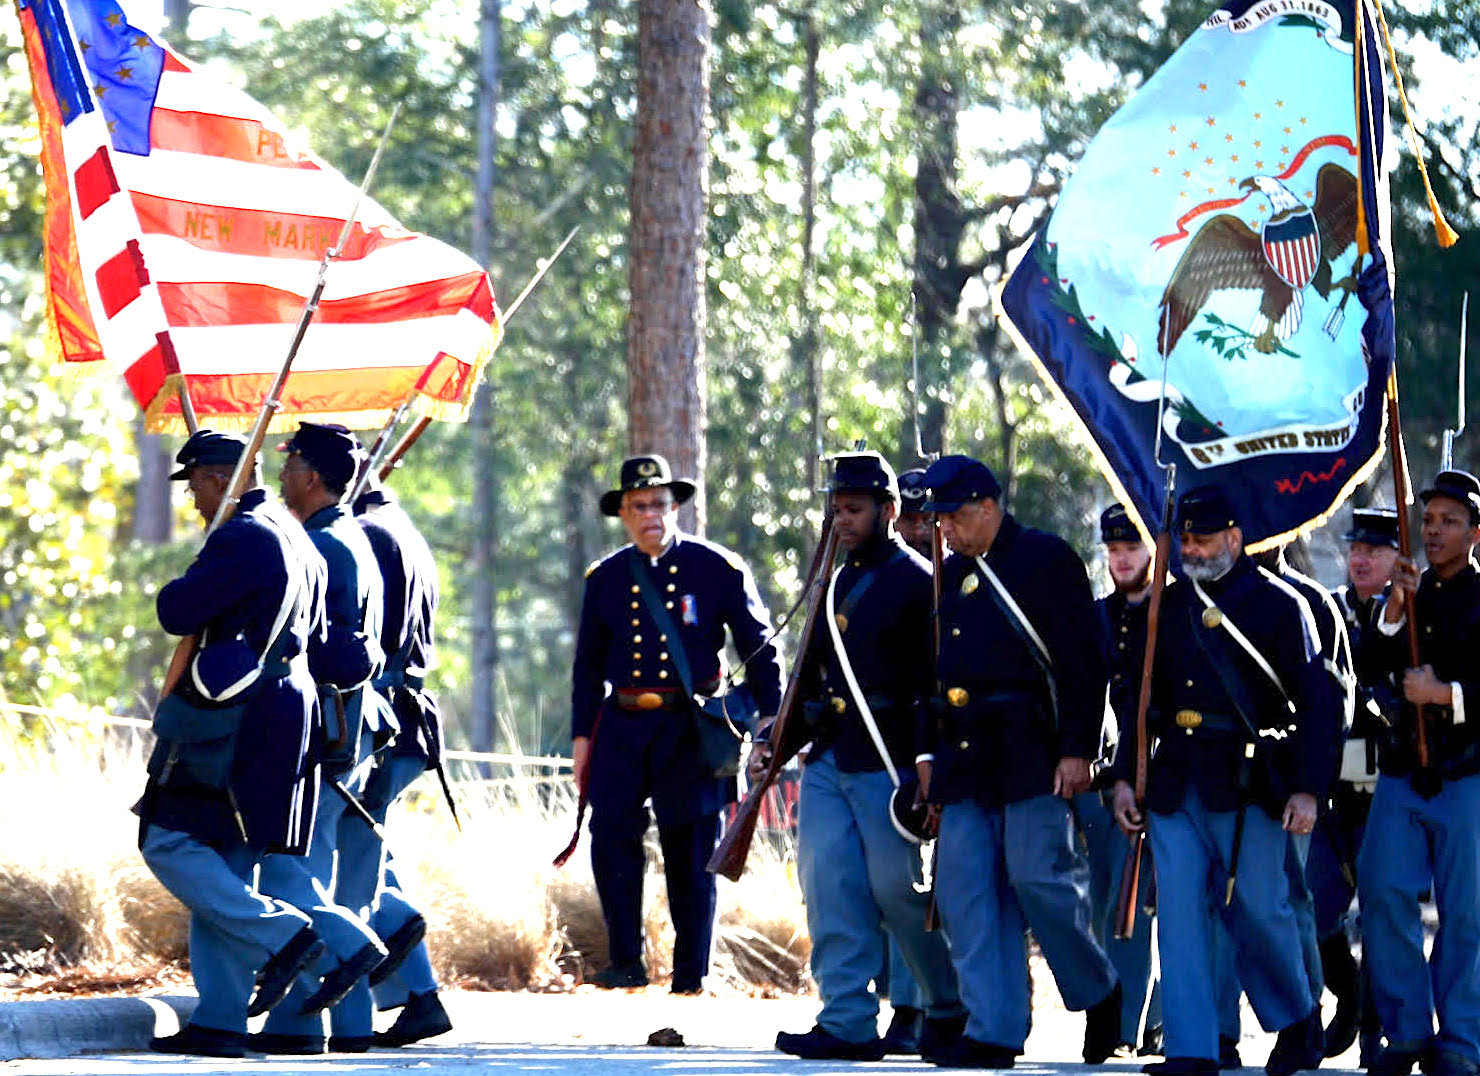 United States Colored Troops re-enactors at the Battle of Forks Road historic site. Thumbnail and photo courtesy of Adam Alphin